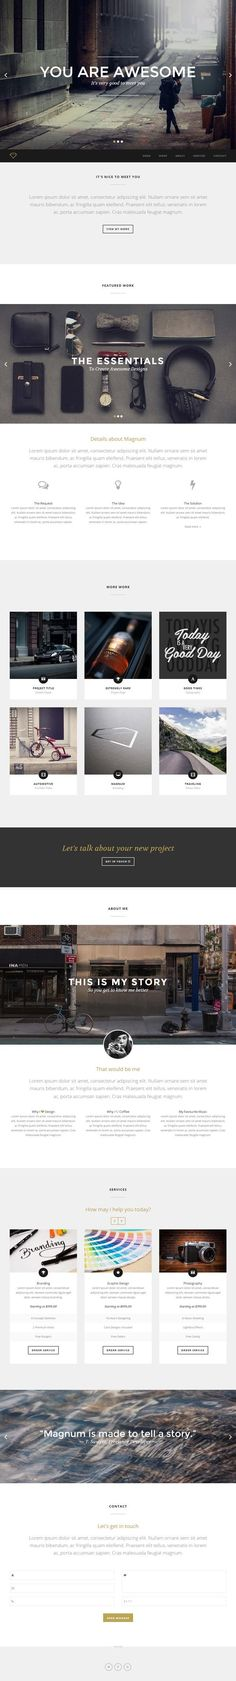 Magnum - Creative Portfolio Template, http://themeforest.net/item/magnum-creative-portfolio-template/6458953?ref=graphicdesignjunction&ref=graphicdesignjunction&clickthrough_id=196032247&redirect_back=true: